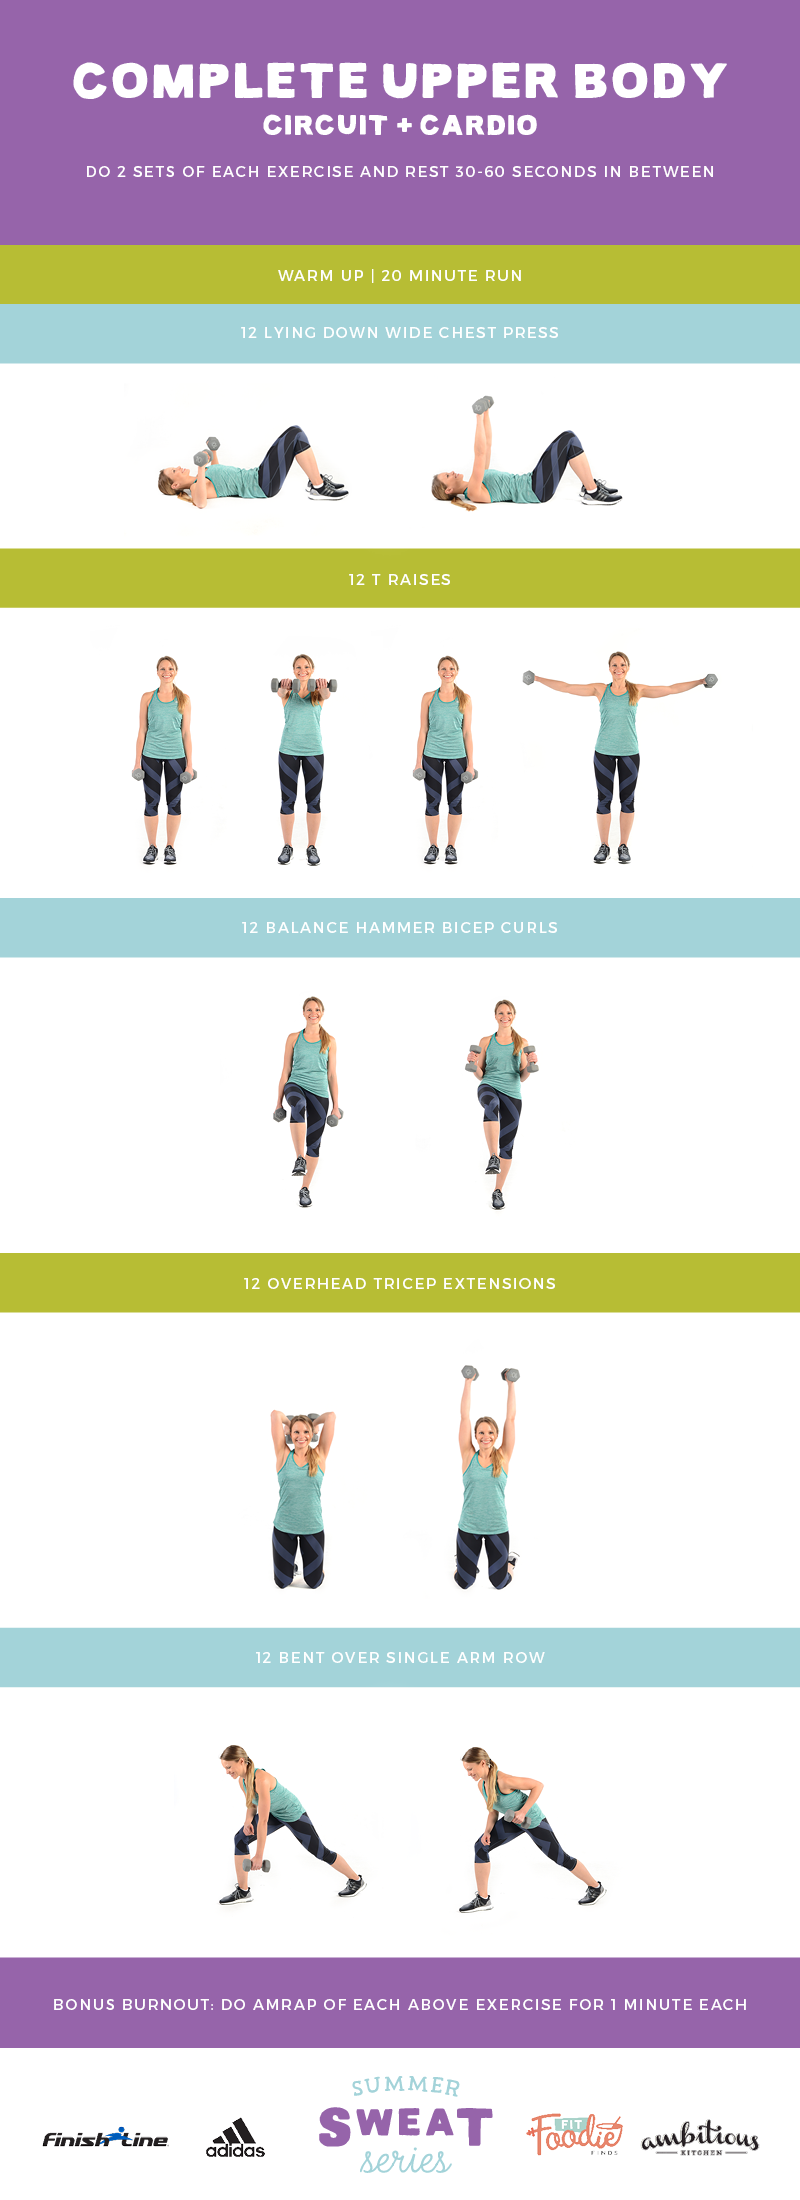 Complete Upper Body Circuit Cardio Workout Ambitious Kitchen Superset Leg Up On Fitness Pinterest